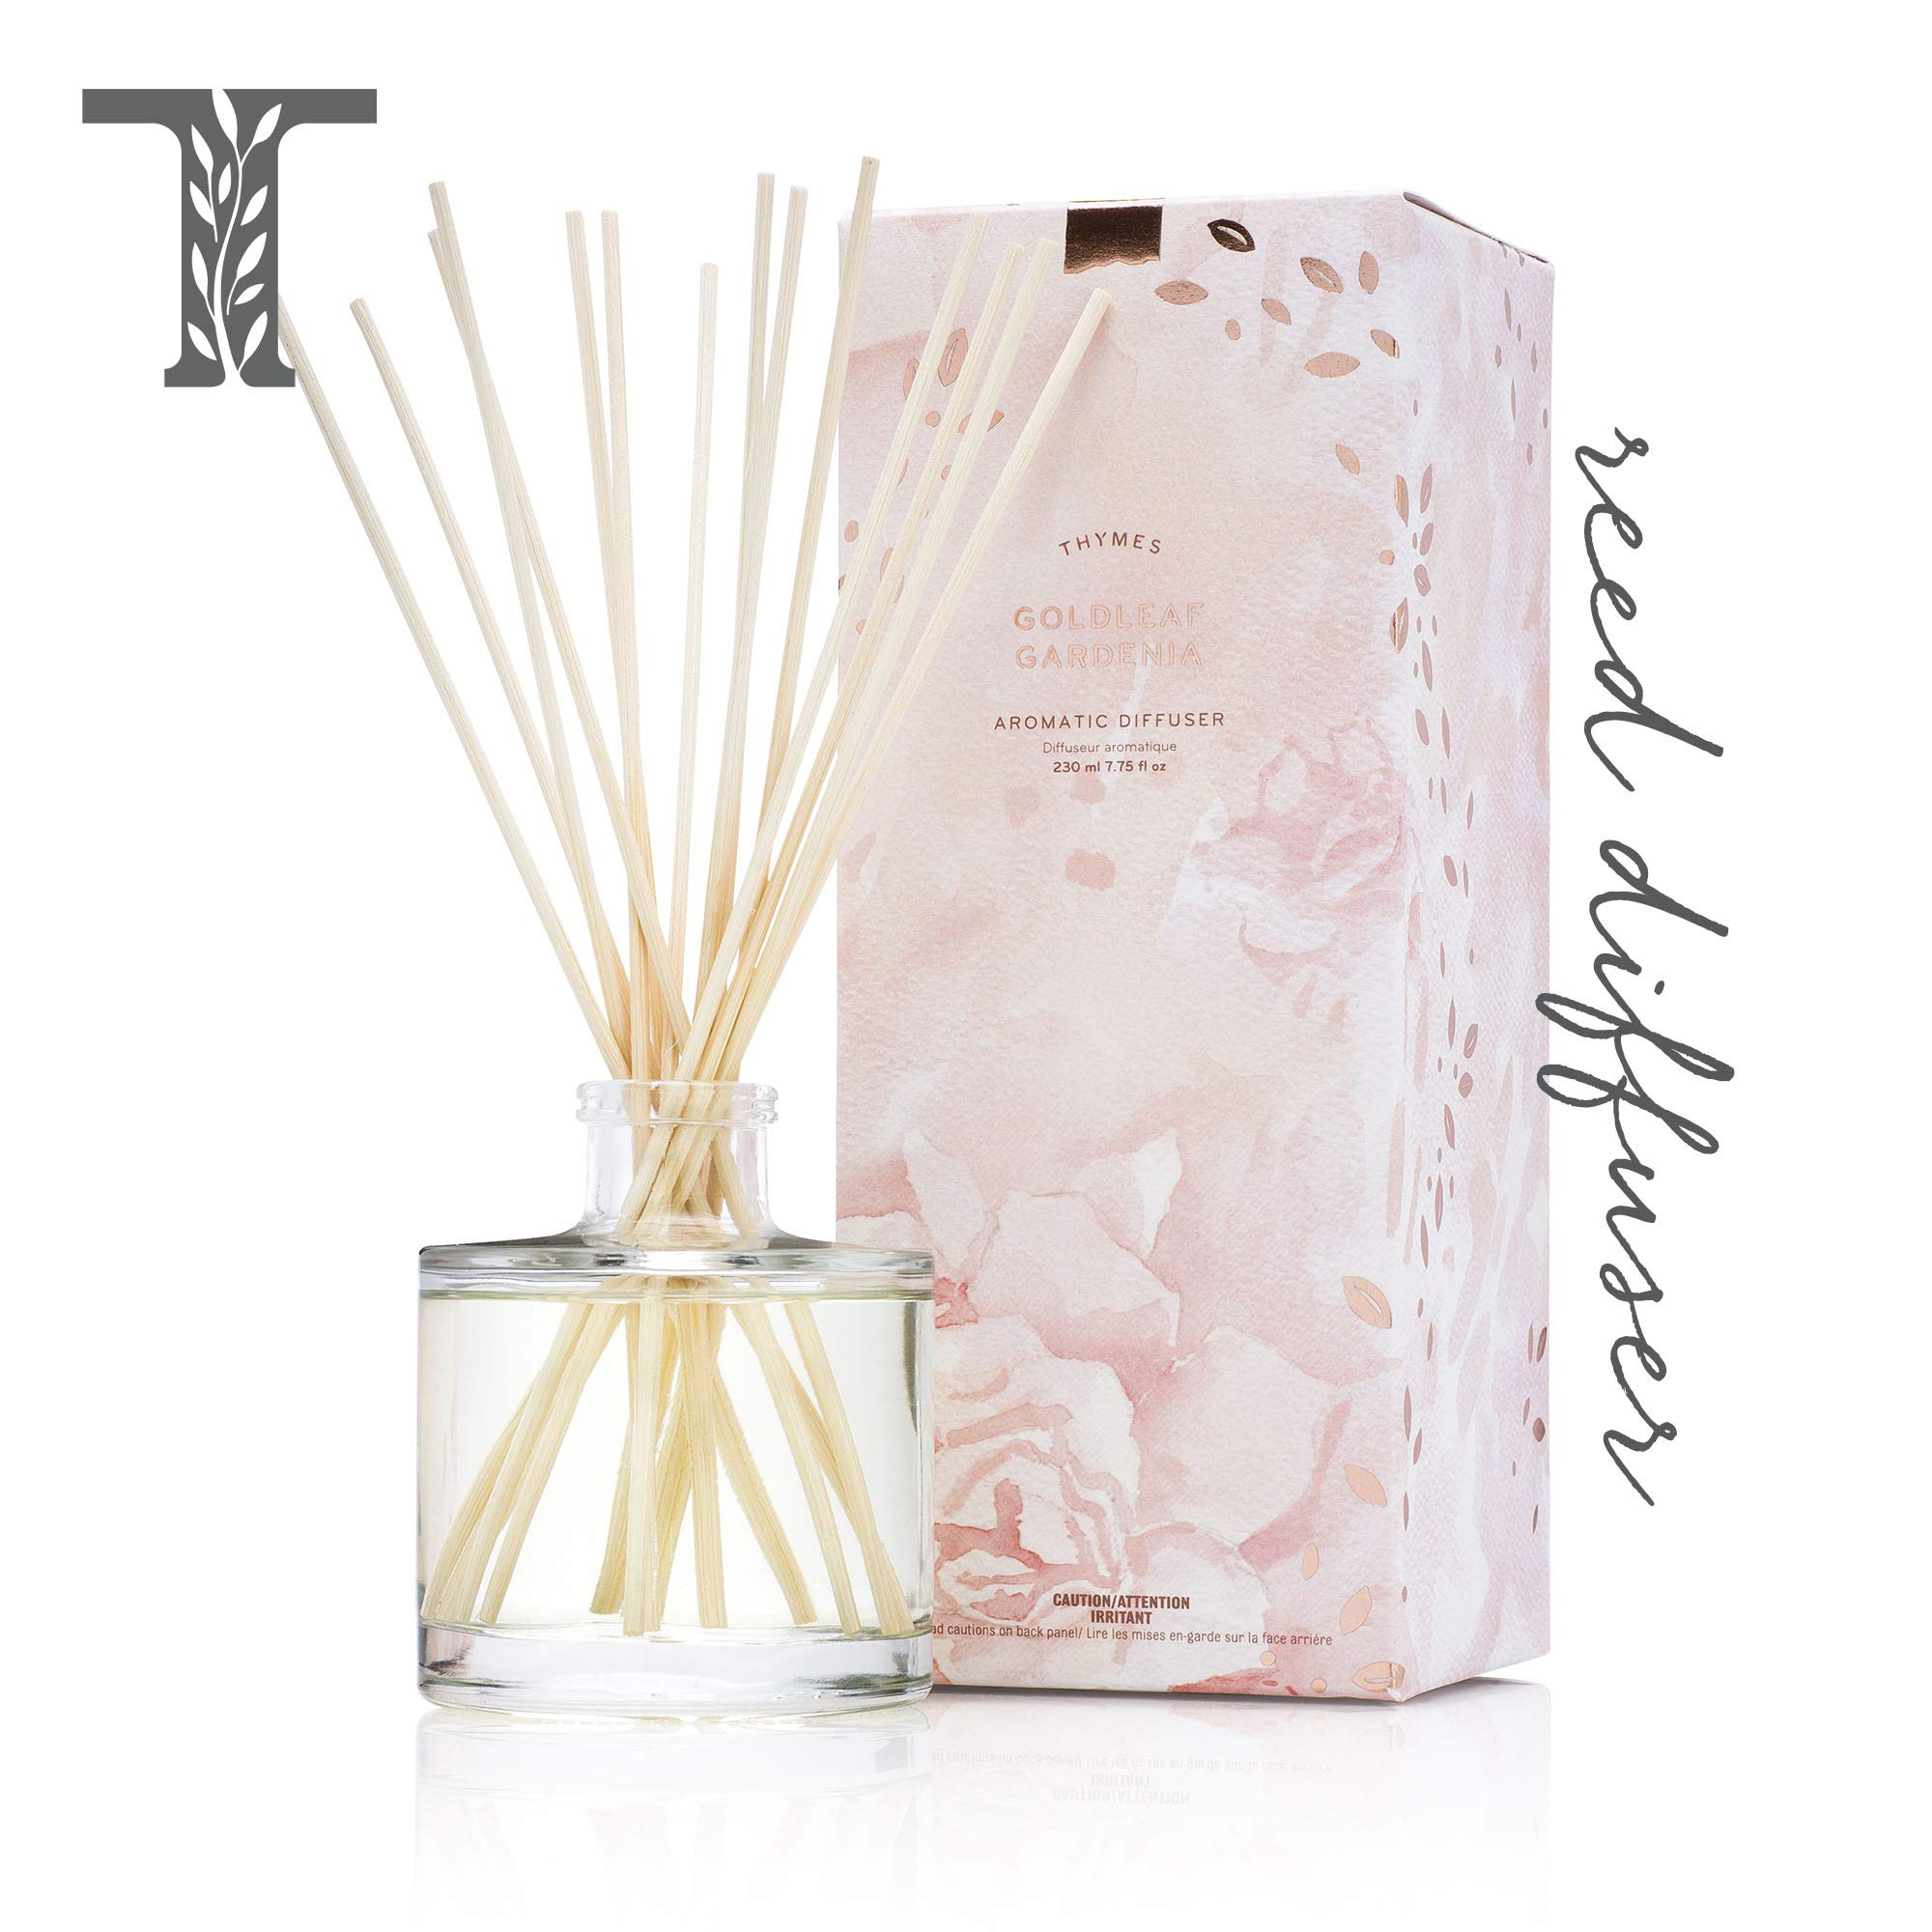 Thymes - Goldleaf Gardenia Aromatic Oil Reed Diffuser - Gift Set with Premium Sticks, Glass Bottle and Scented Oil - 6.5 oz by Thymes